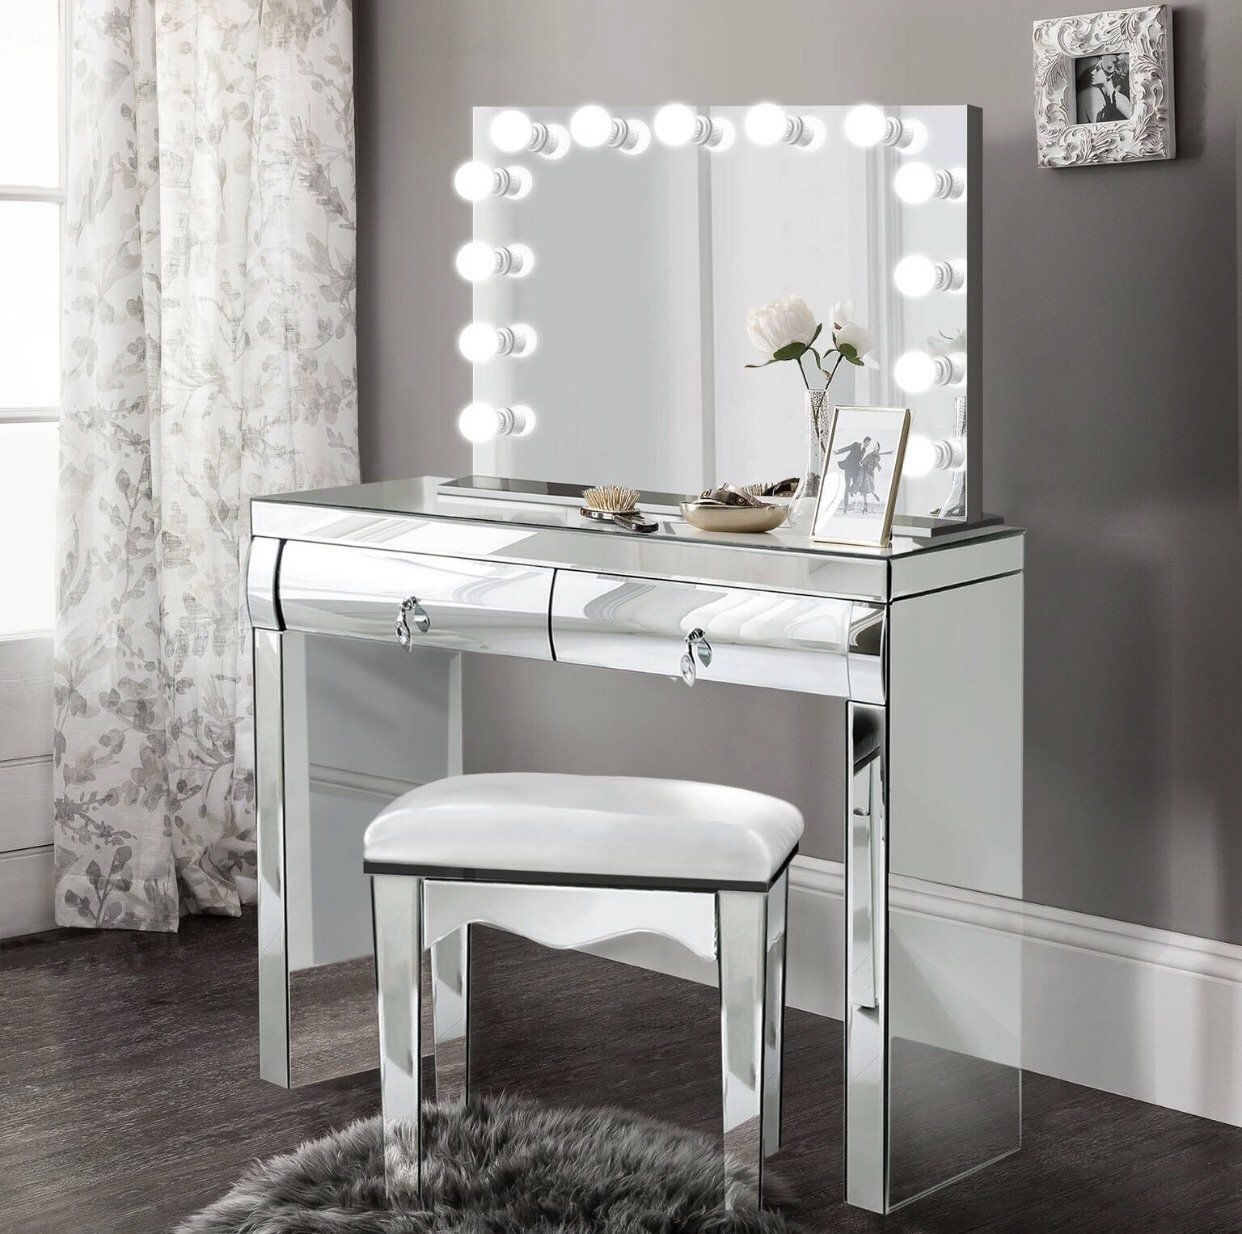 Complete set Mirrored Dimmable Hollywood Makeup Mirror